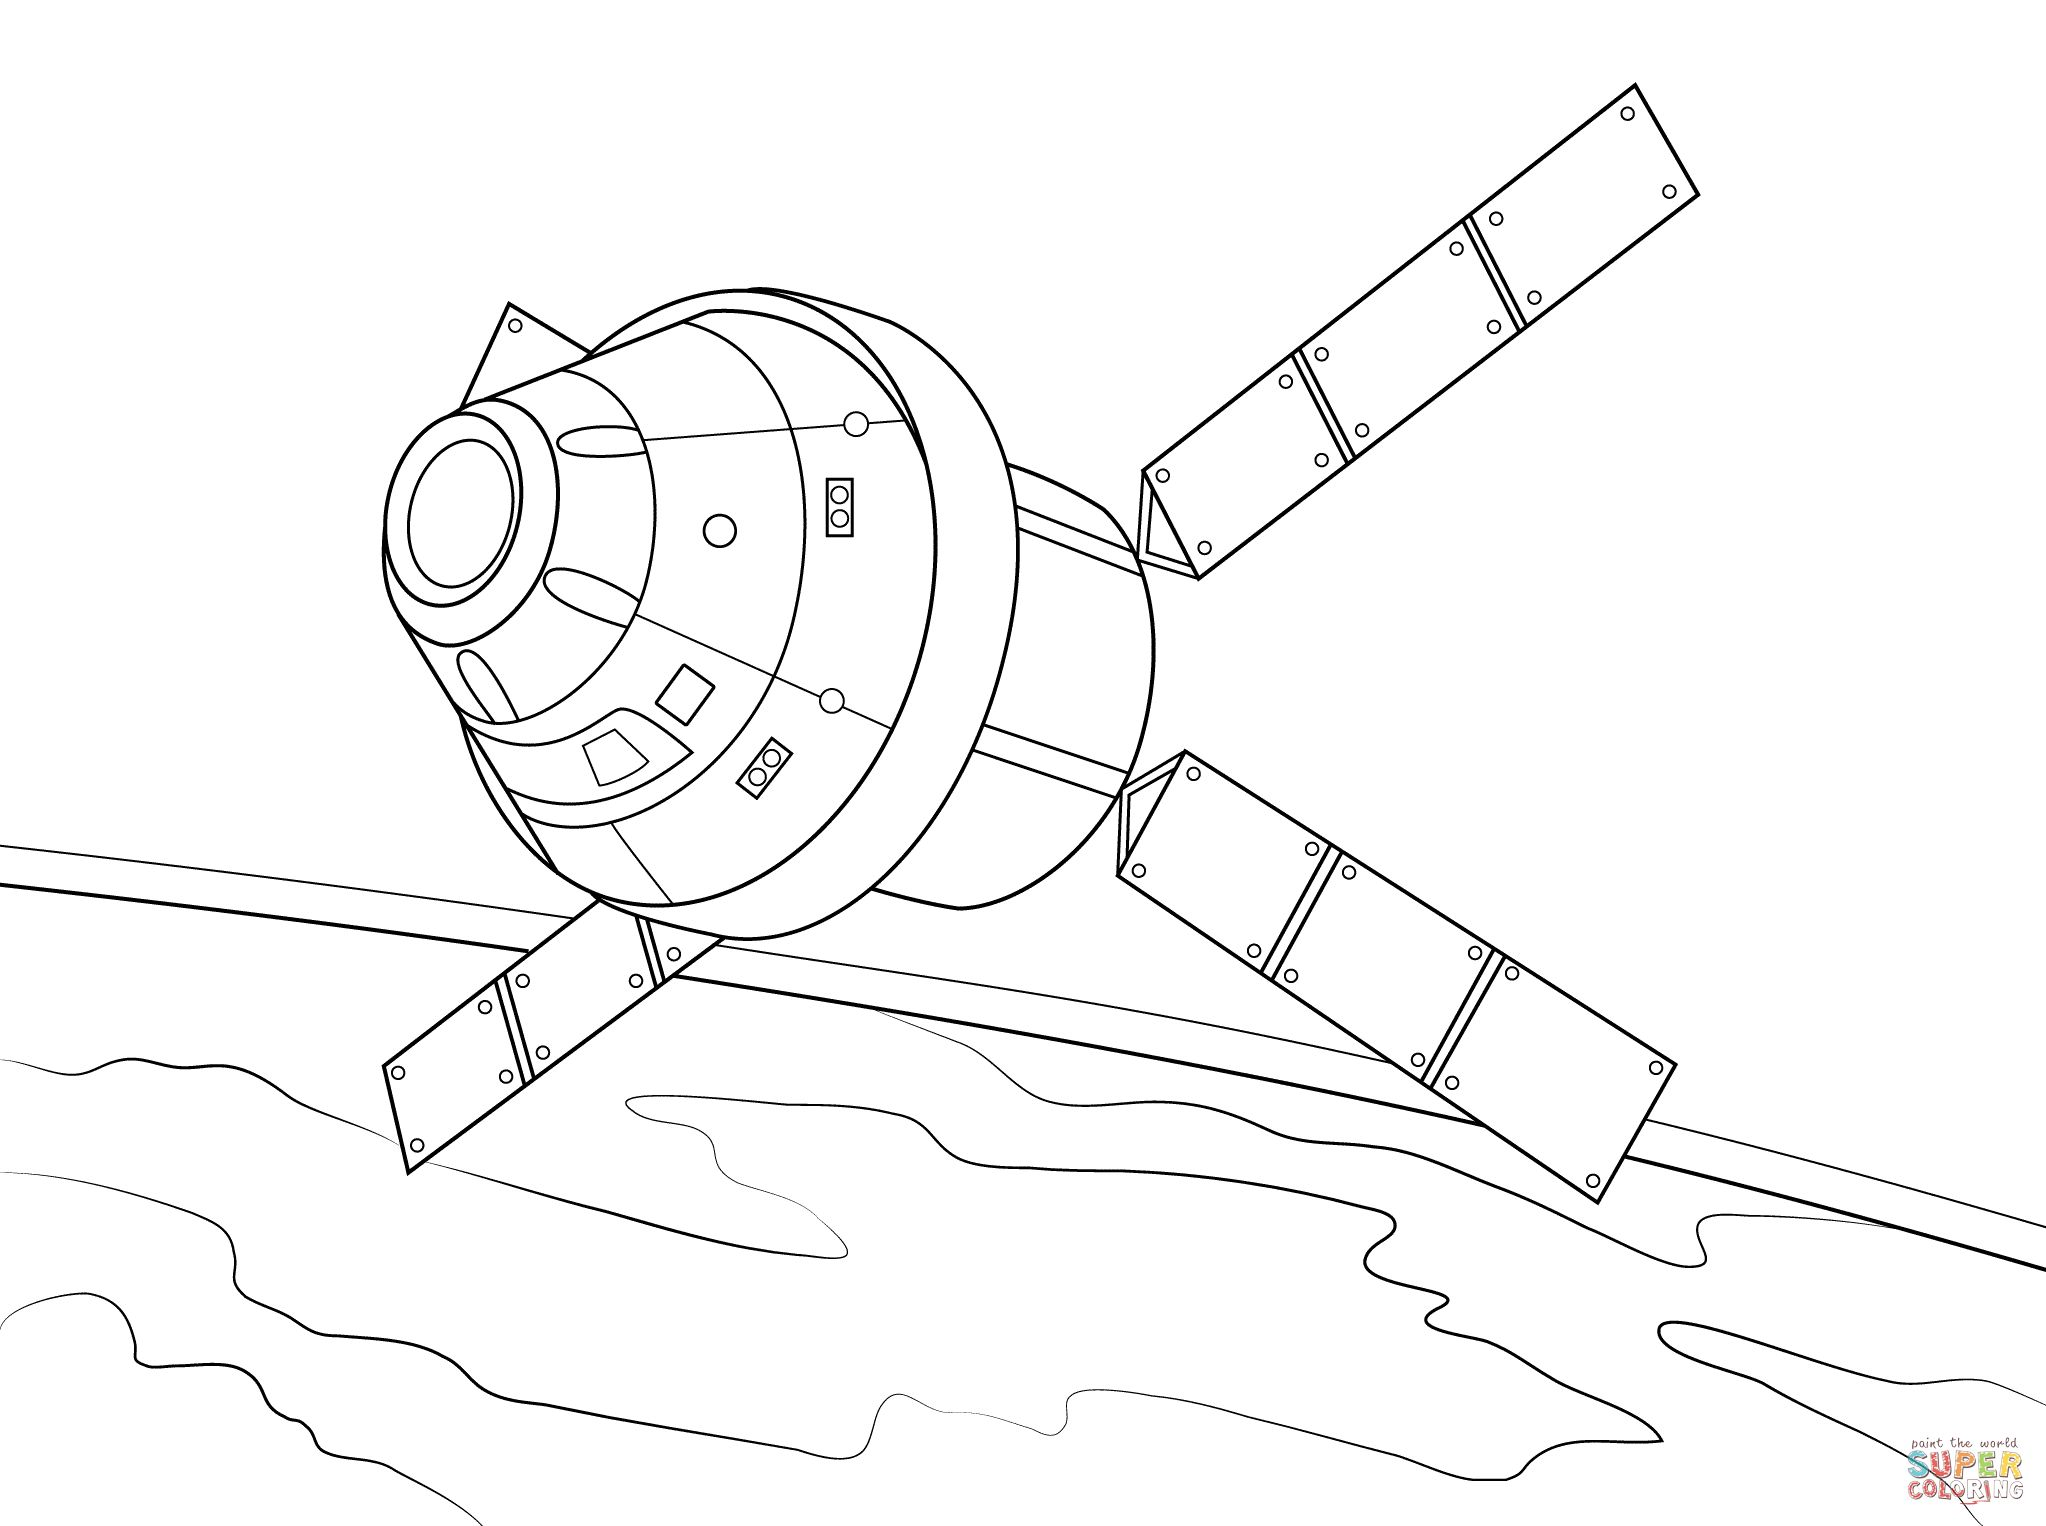 2046x1526 Orion Spacecraft With Atv Based Service Module Coloring Pages